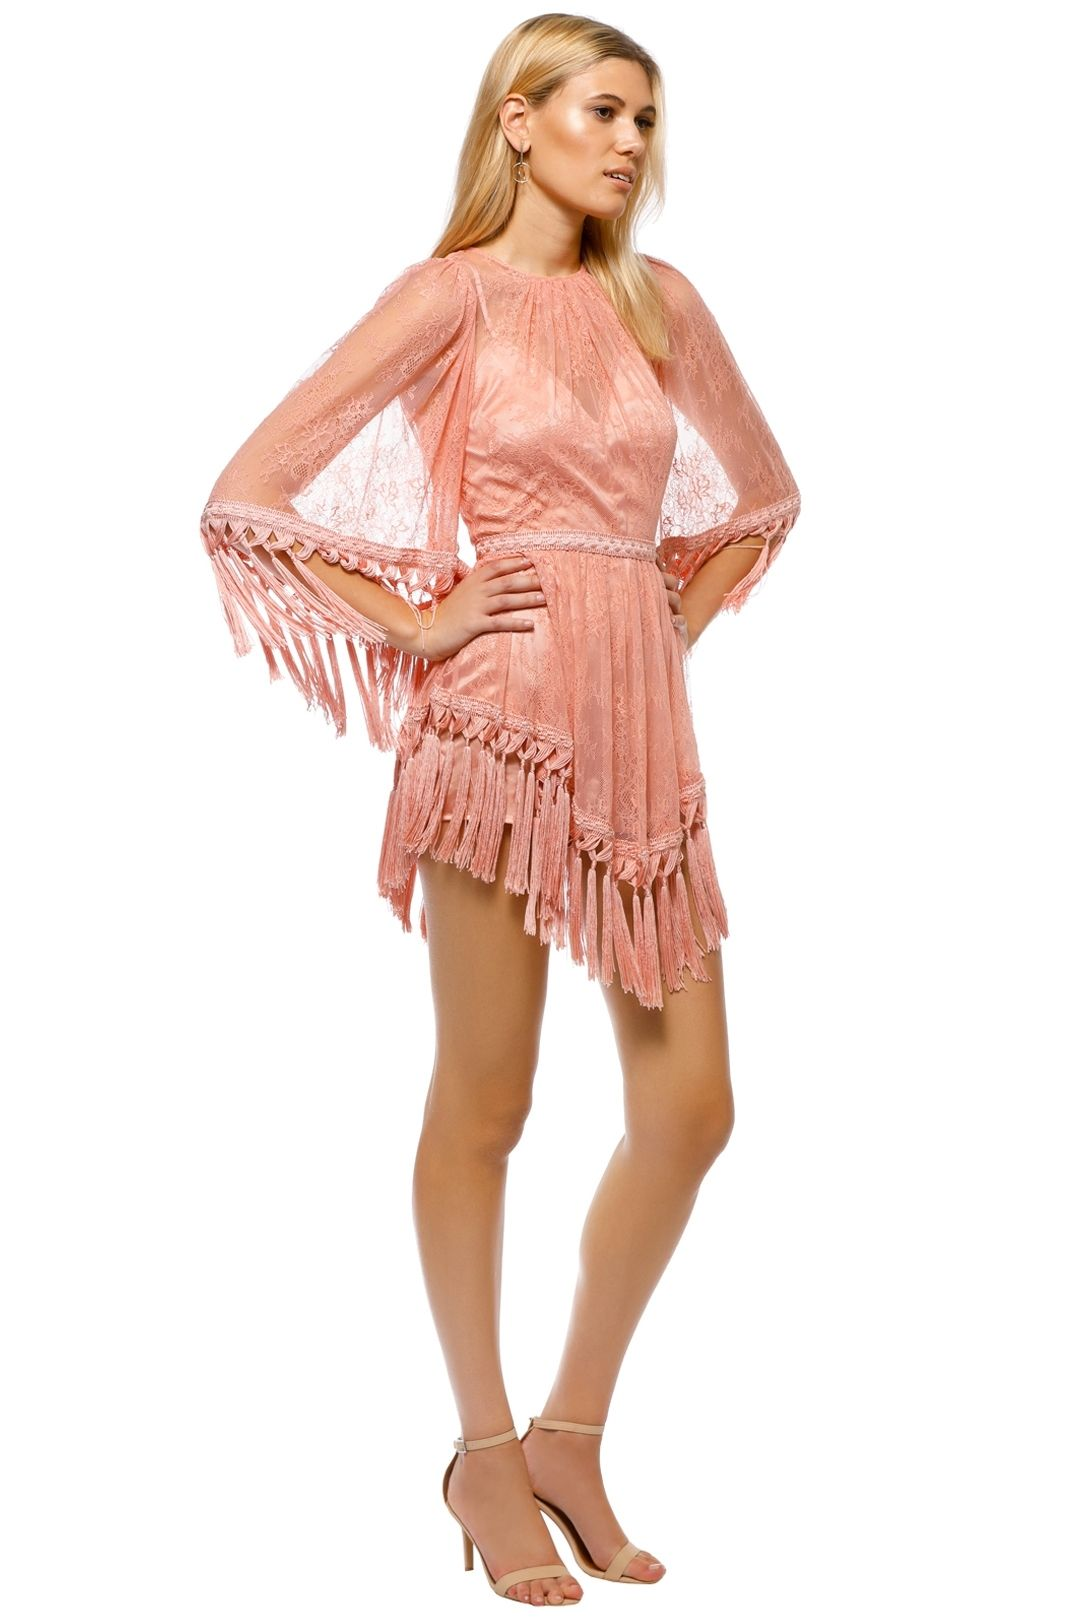 Alice McCall - Are You Ready Girl Mini Dress - Dusty Rose - Side